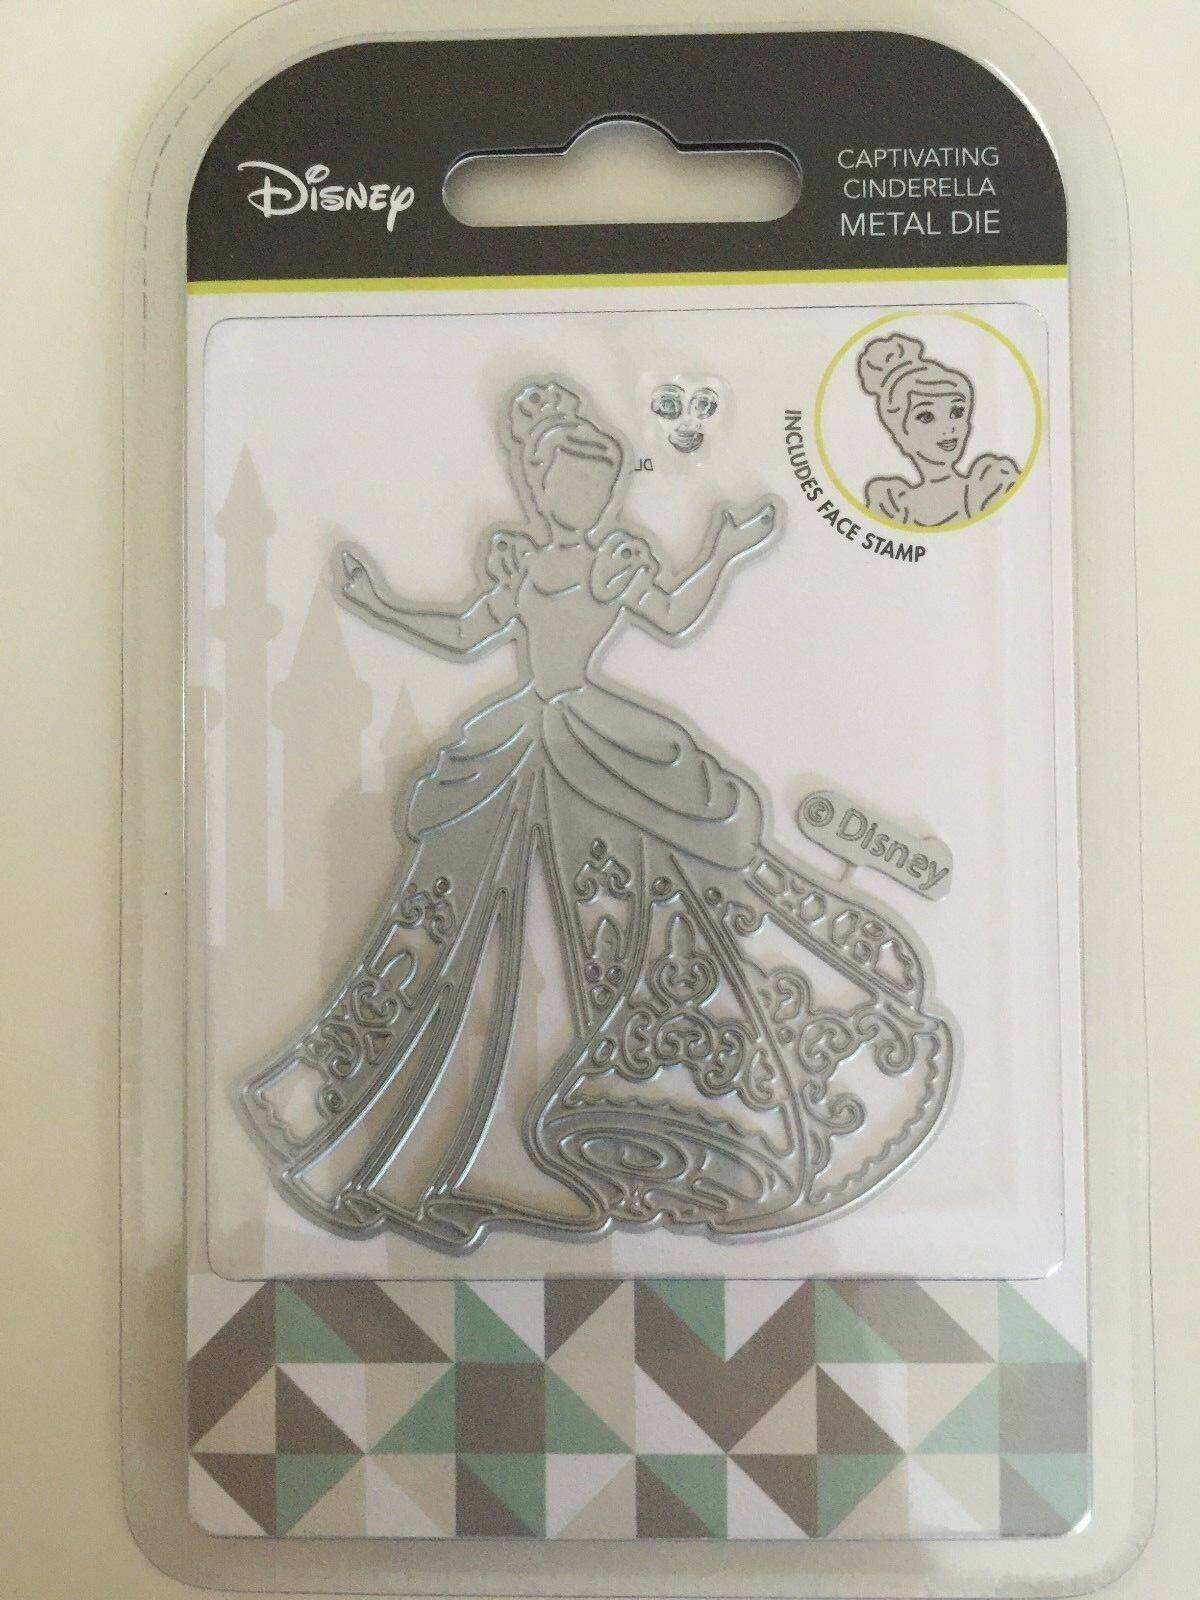 Captivating Cinderella Disney Princess metal die DUS0640 Character World dies